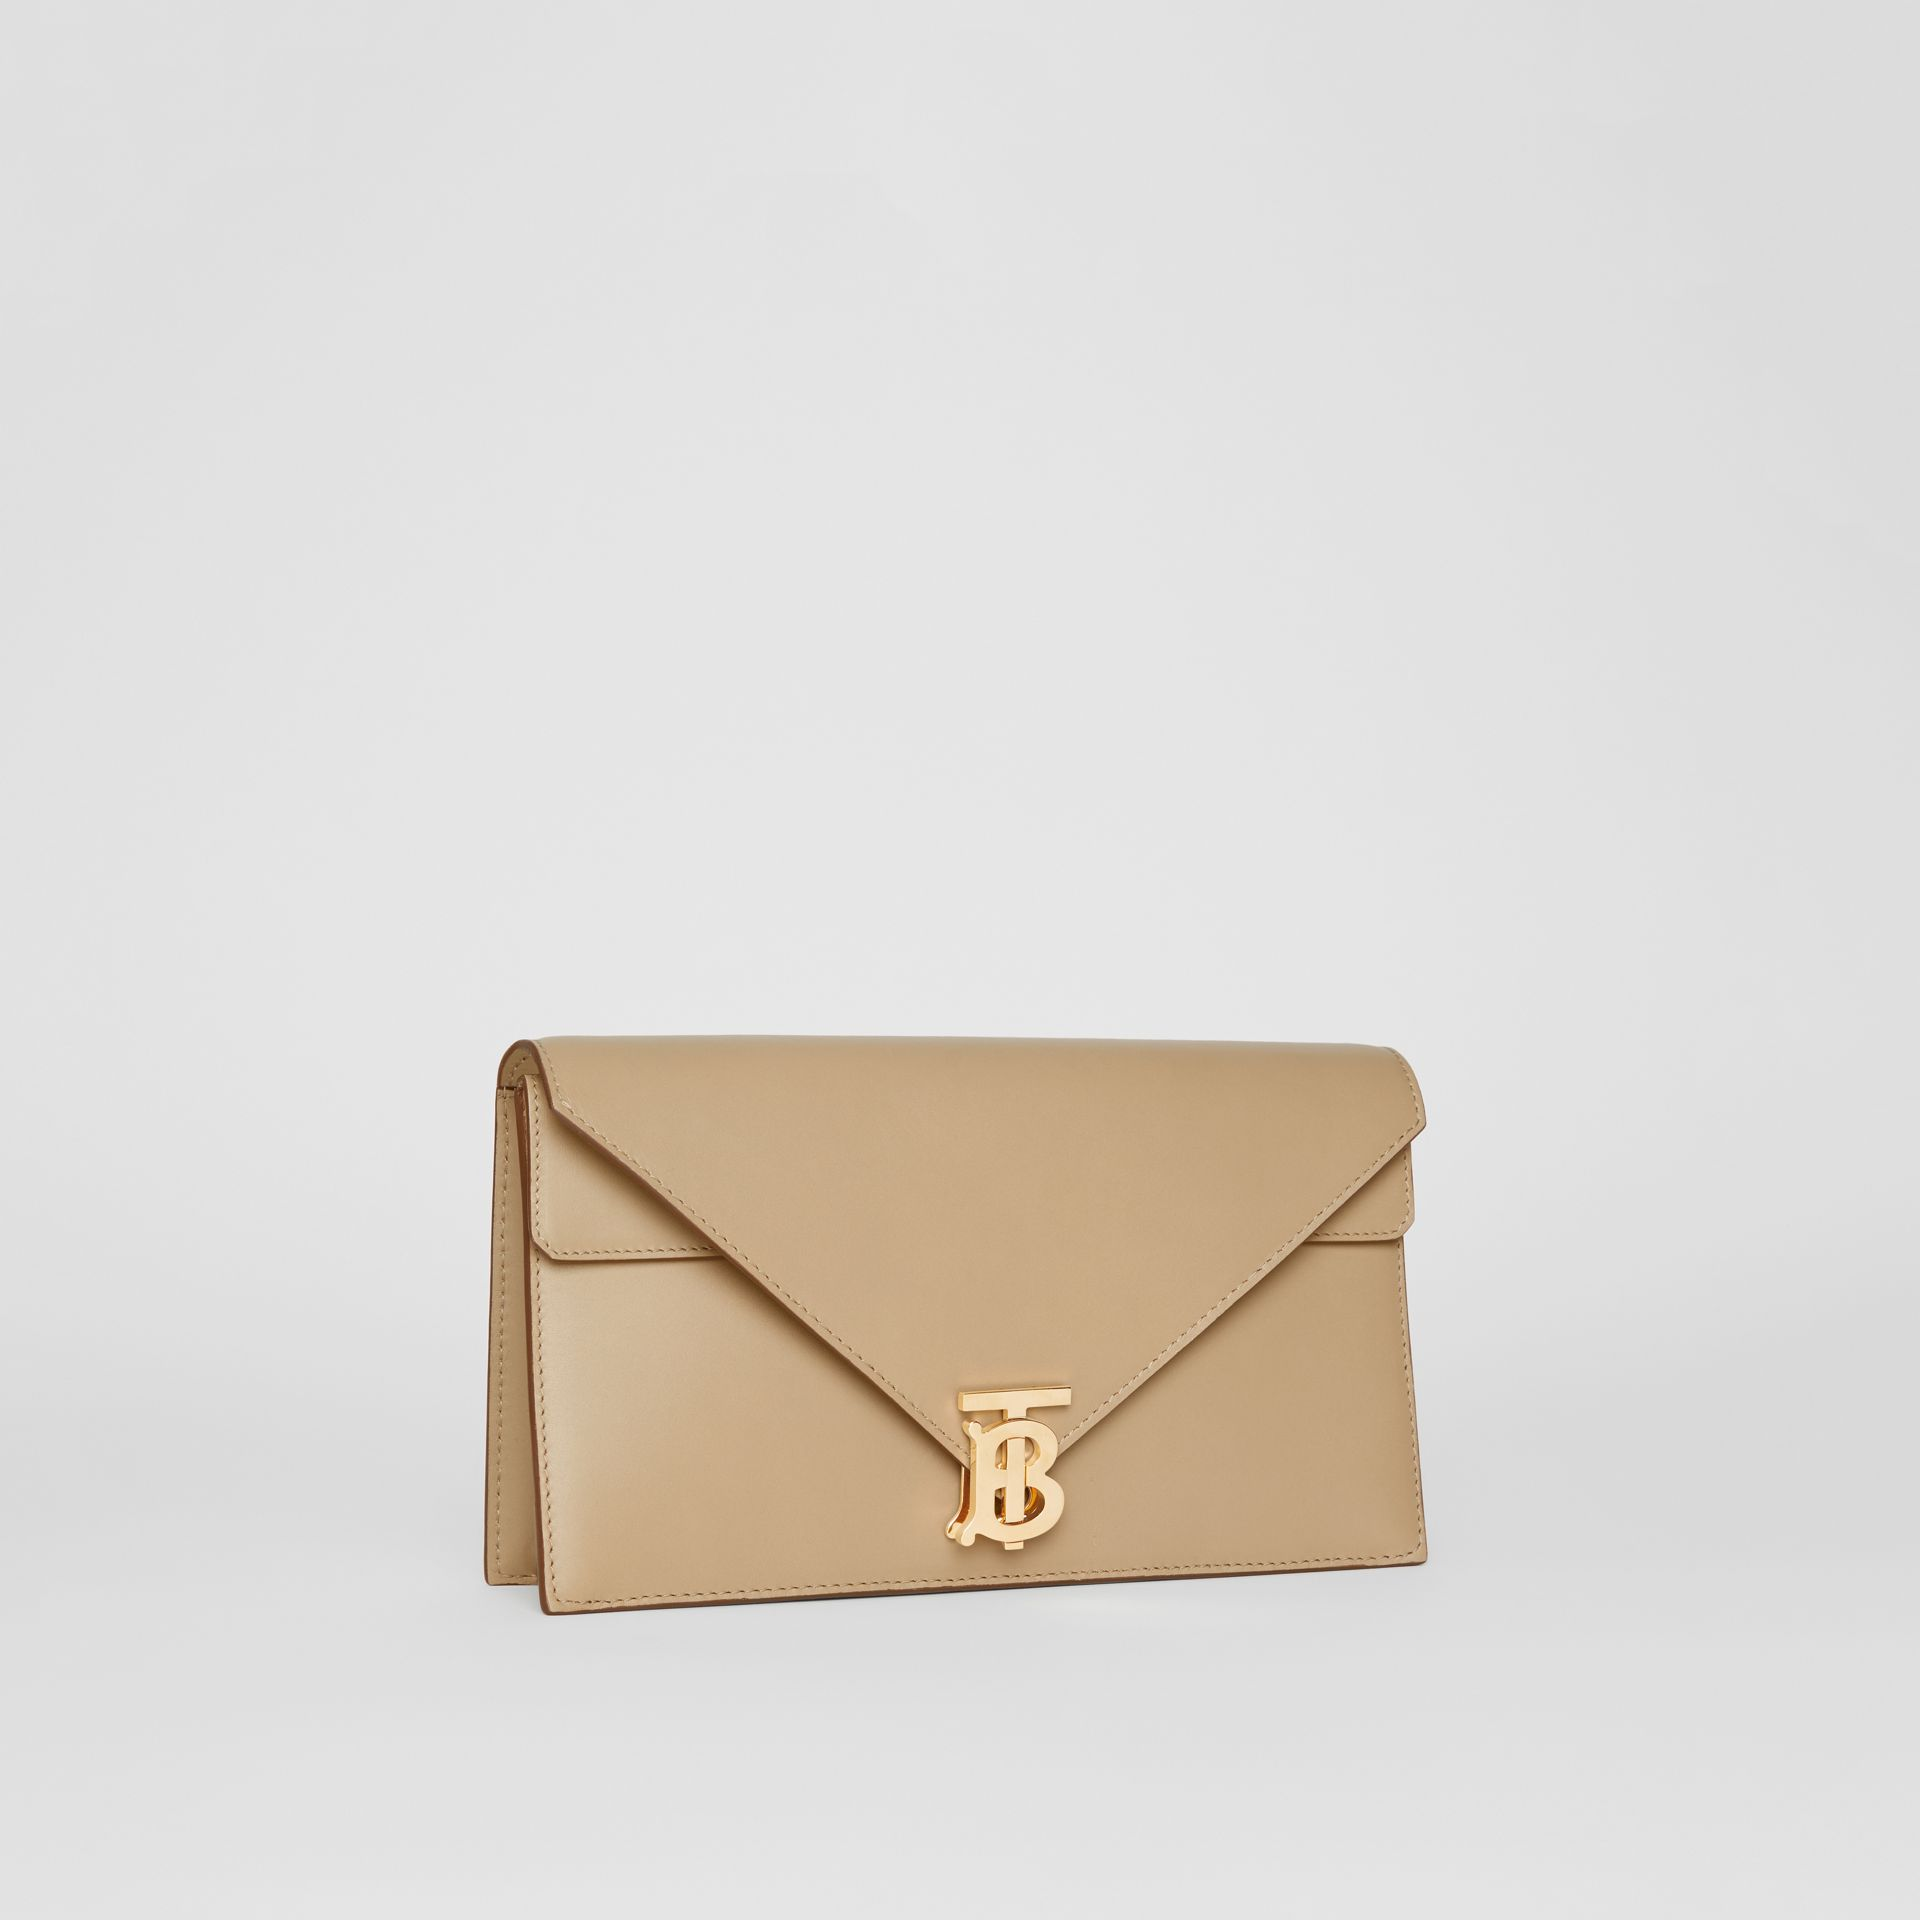 Small Leather TB Envelope Clutch in Honey - Women | Burberry - gallery image 7